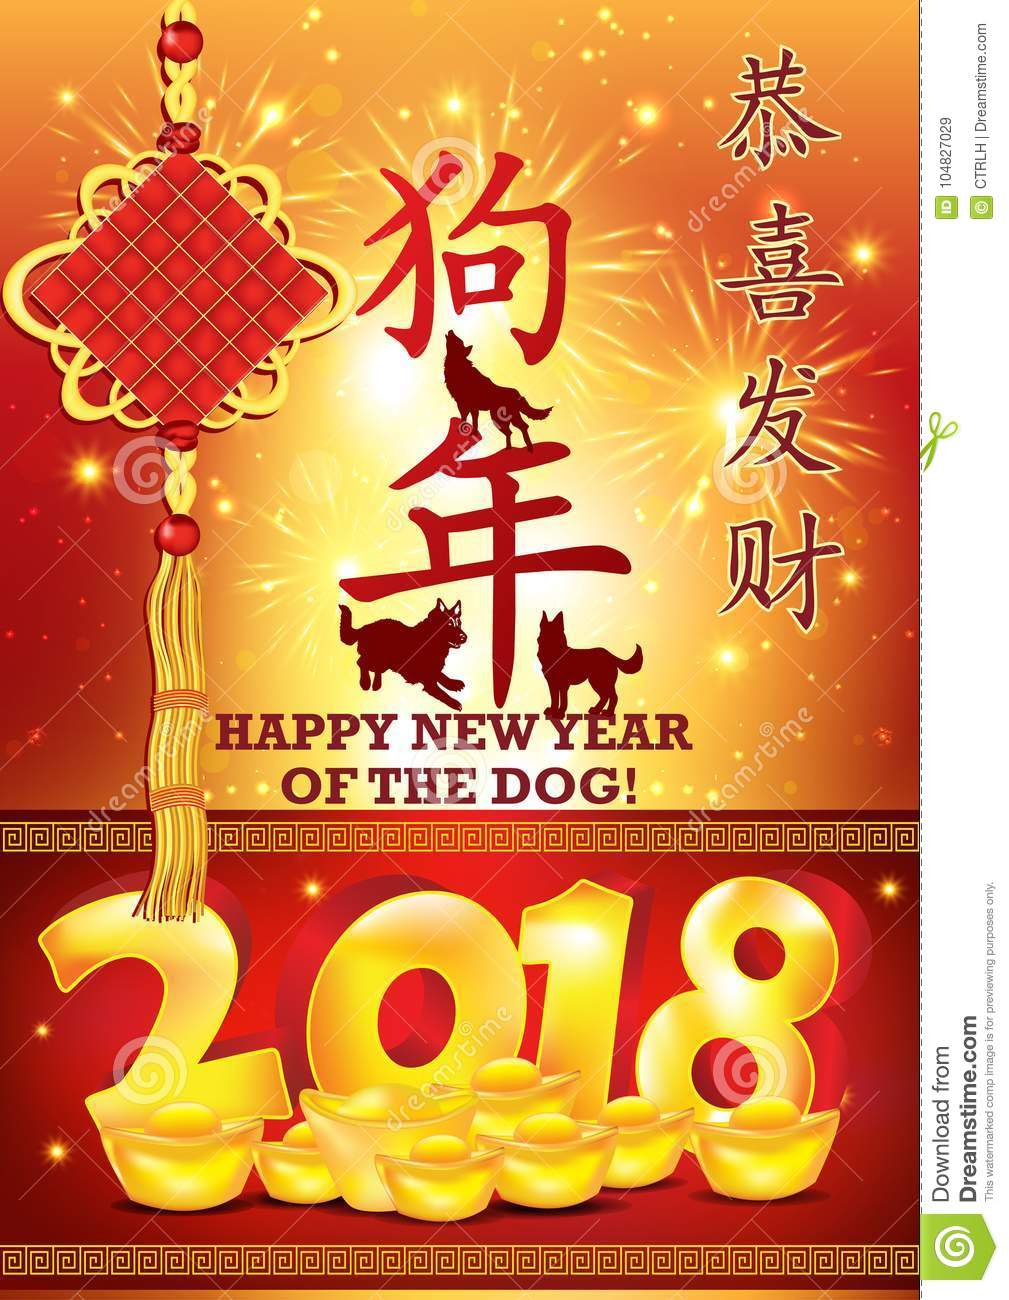 Happy chinese new year of the dog 2018 greeting card with text in business chinese new year 2018 greeting card chinese text translation congratulations and get rich year of the dog m4hsunfo